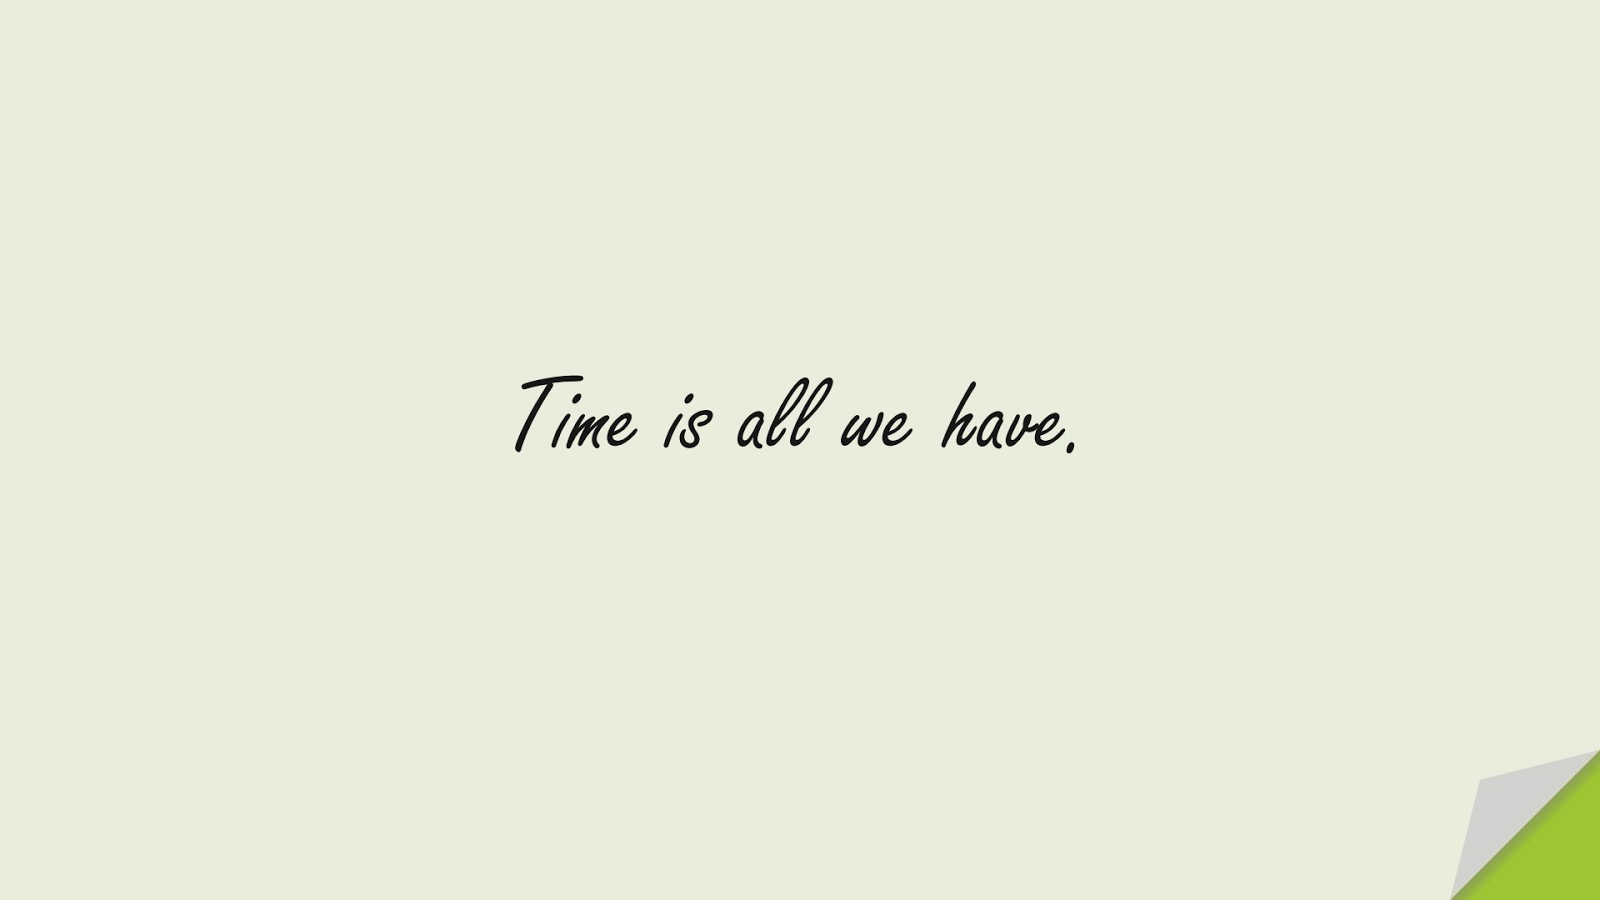 Time is all we have.FALSE